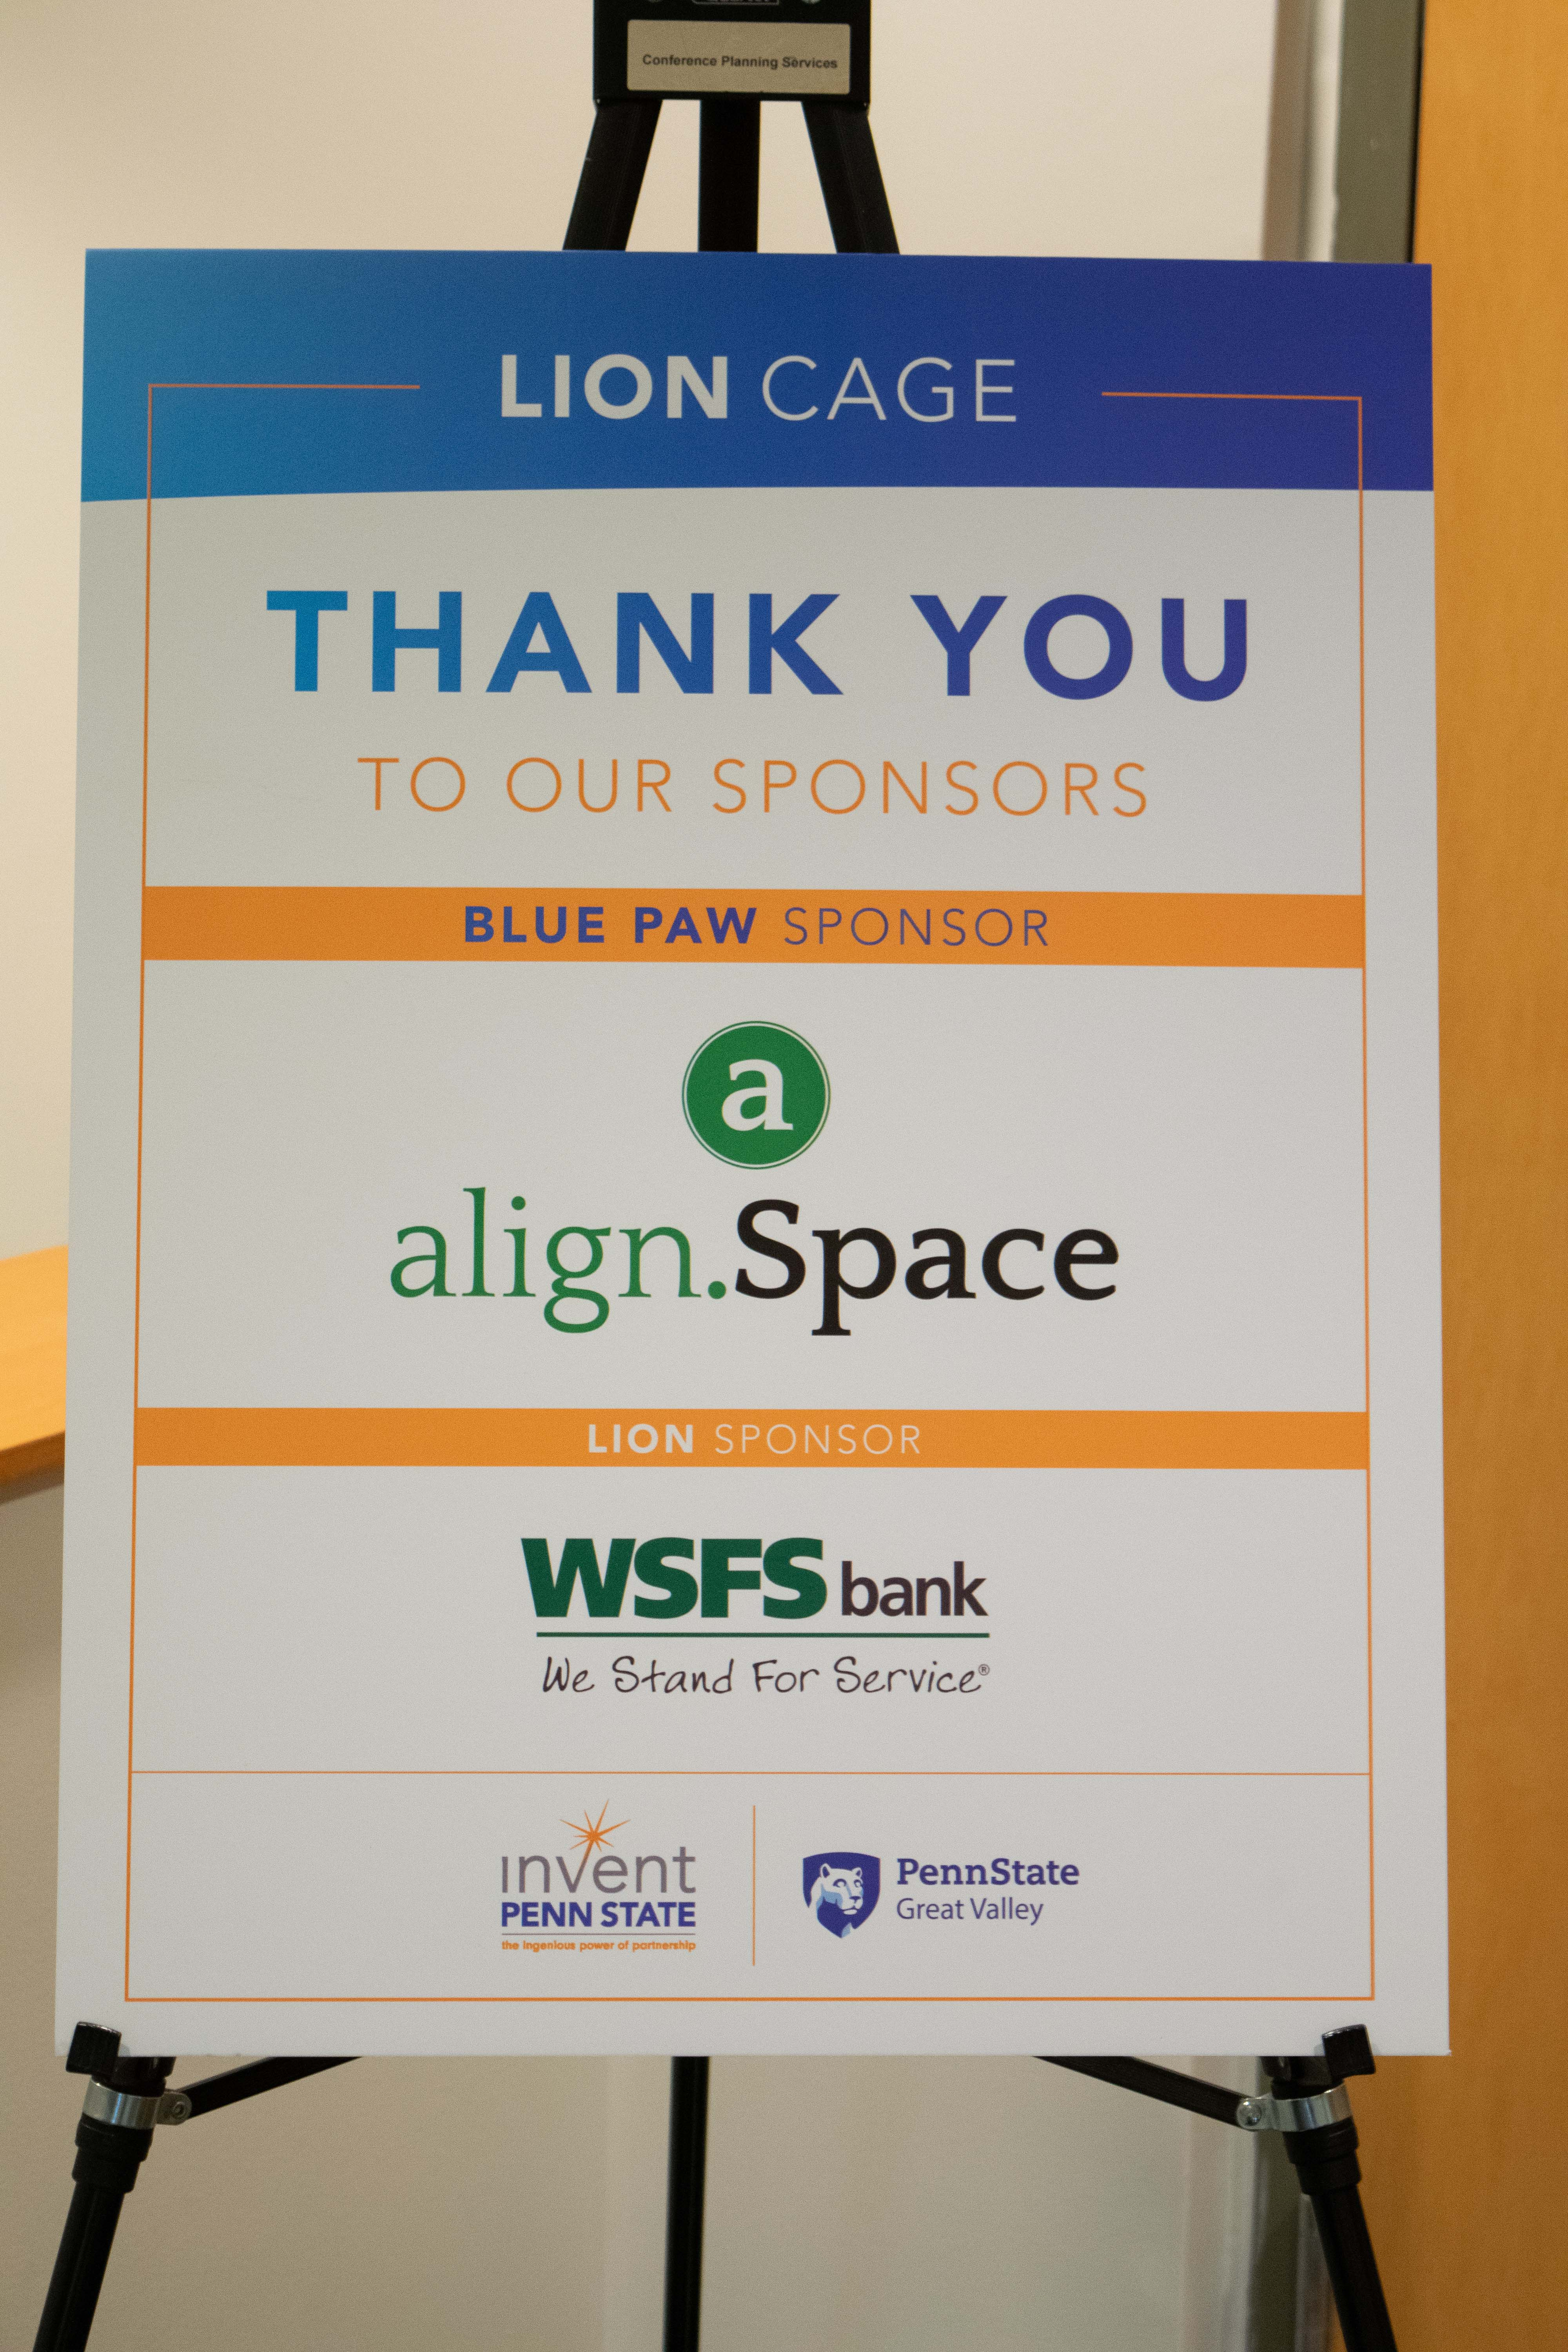 Poster with logos of Lion Cage sponsors